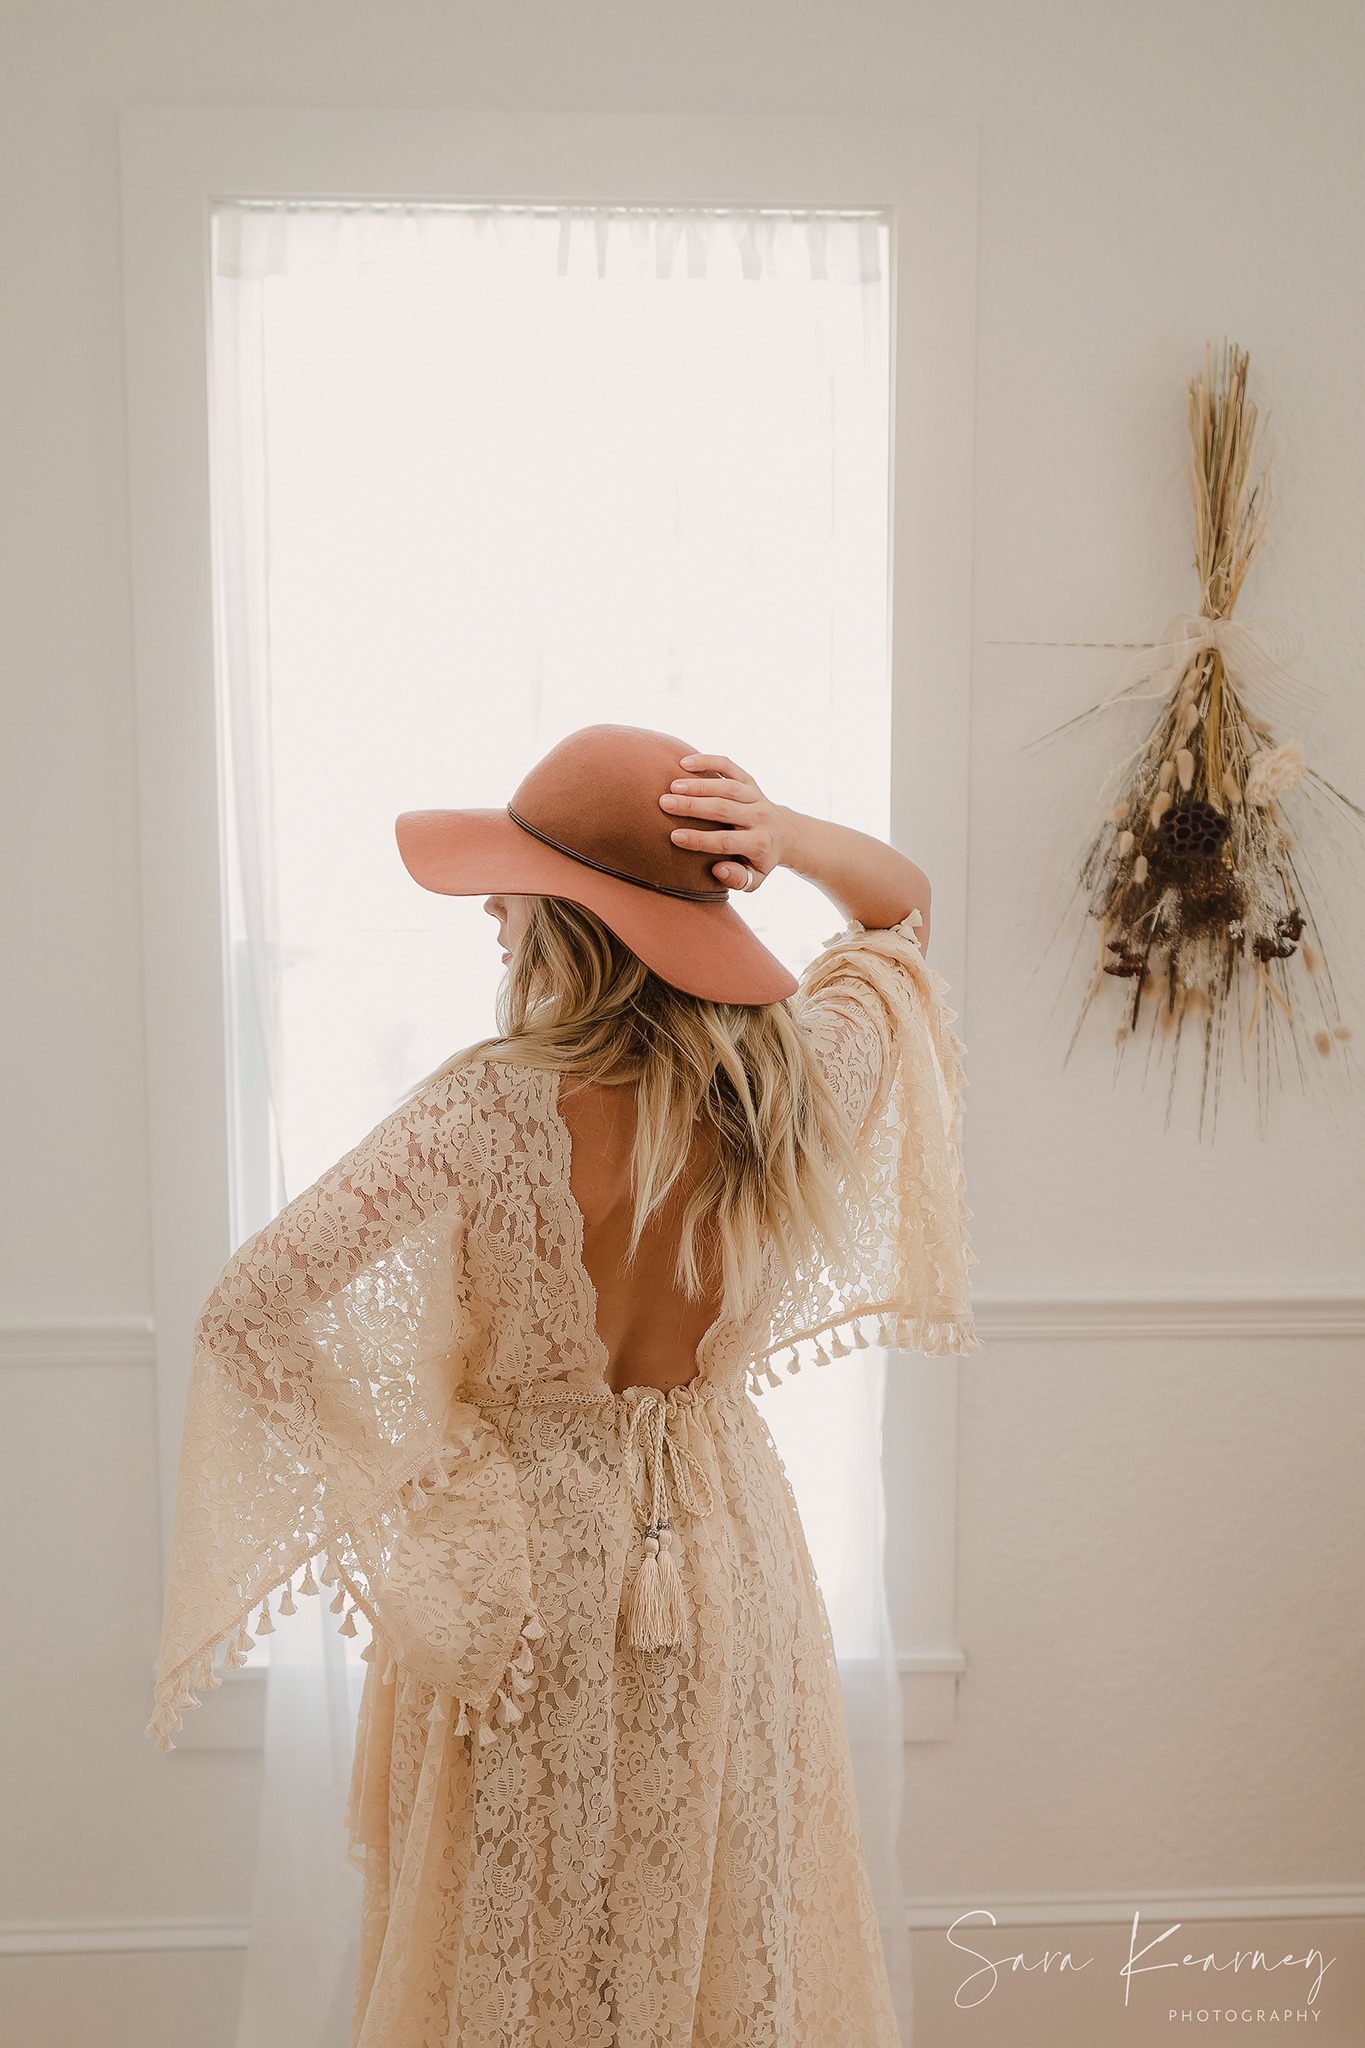 Boho Photo Shoot!! Mommy photoshoot | Sara Kearney Orlando Photographer 3